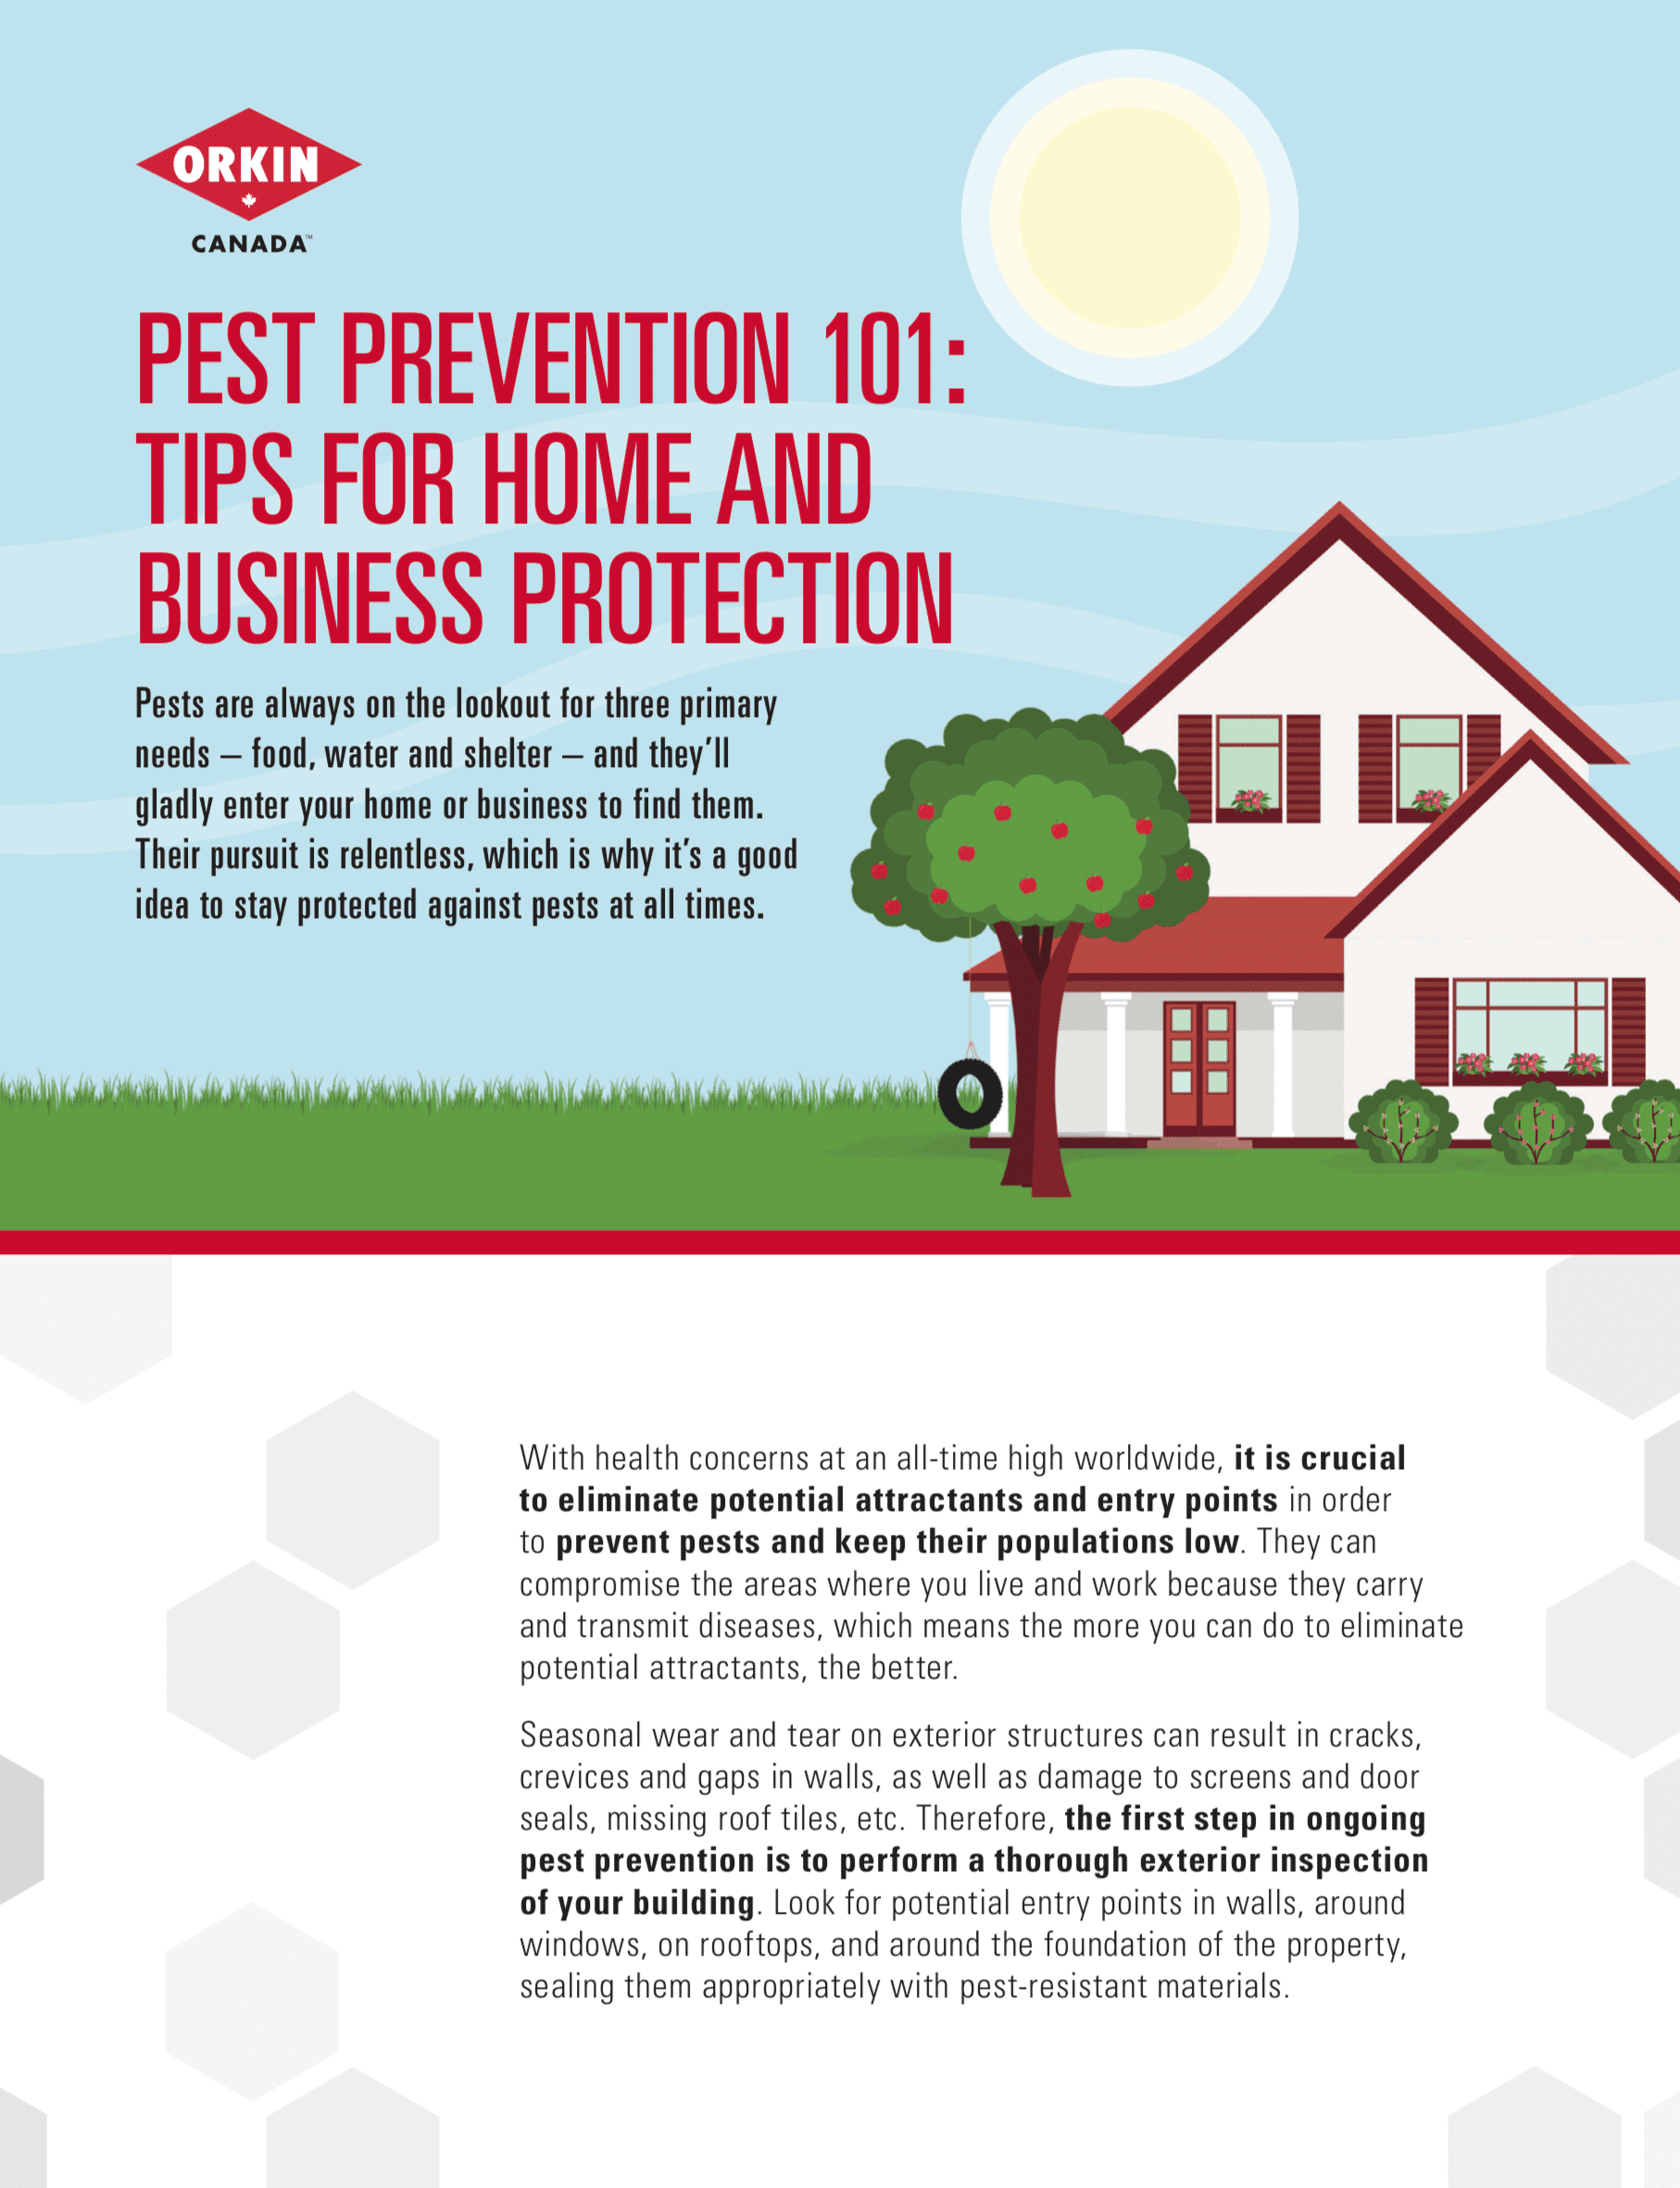 Tips sheet to protect against homes or businesses